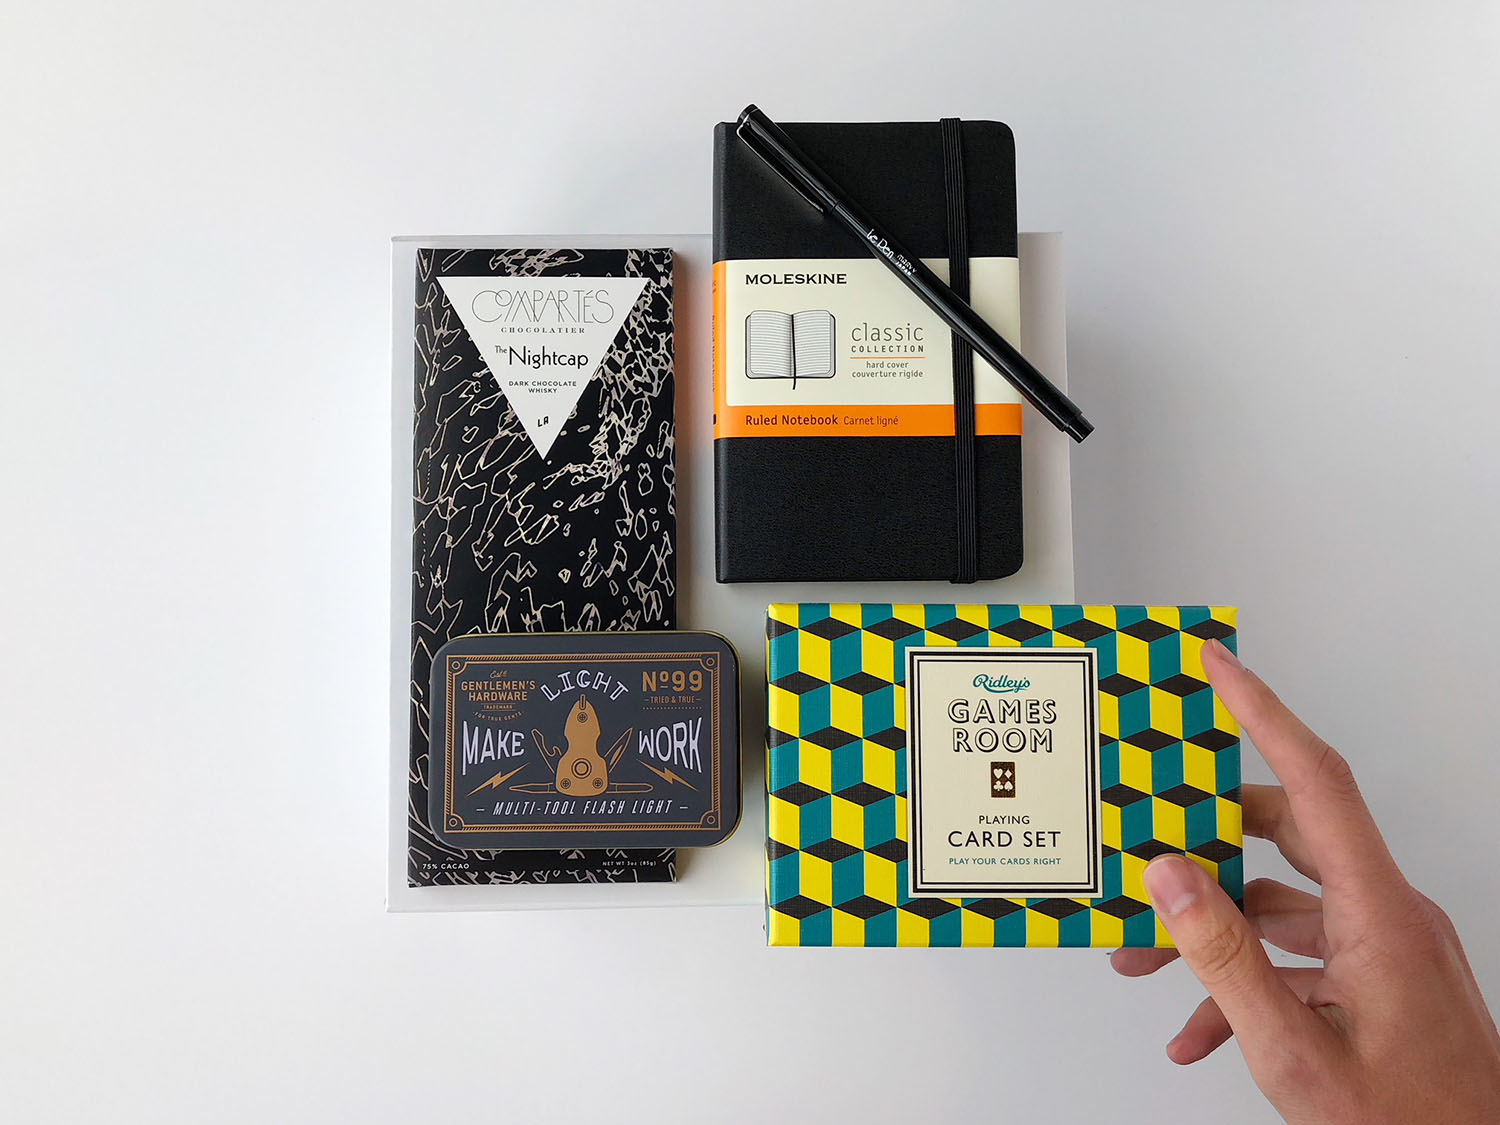 """What We're About - We love gifts, who doesn't?There's nothing better than hearing someone exclaim in wonder and delight, """"what a good gift!"""" after receiving your present. We aim for this with each and every order, ensuring all orders are assembled and delivered with personal attention and care."""